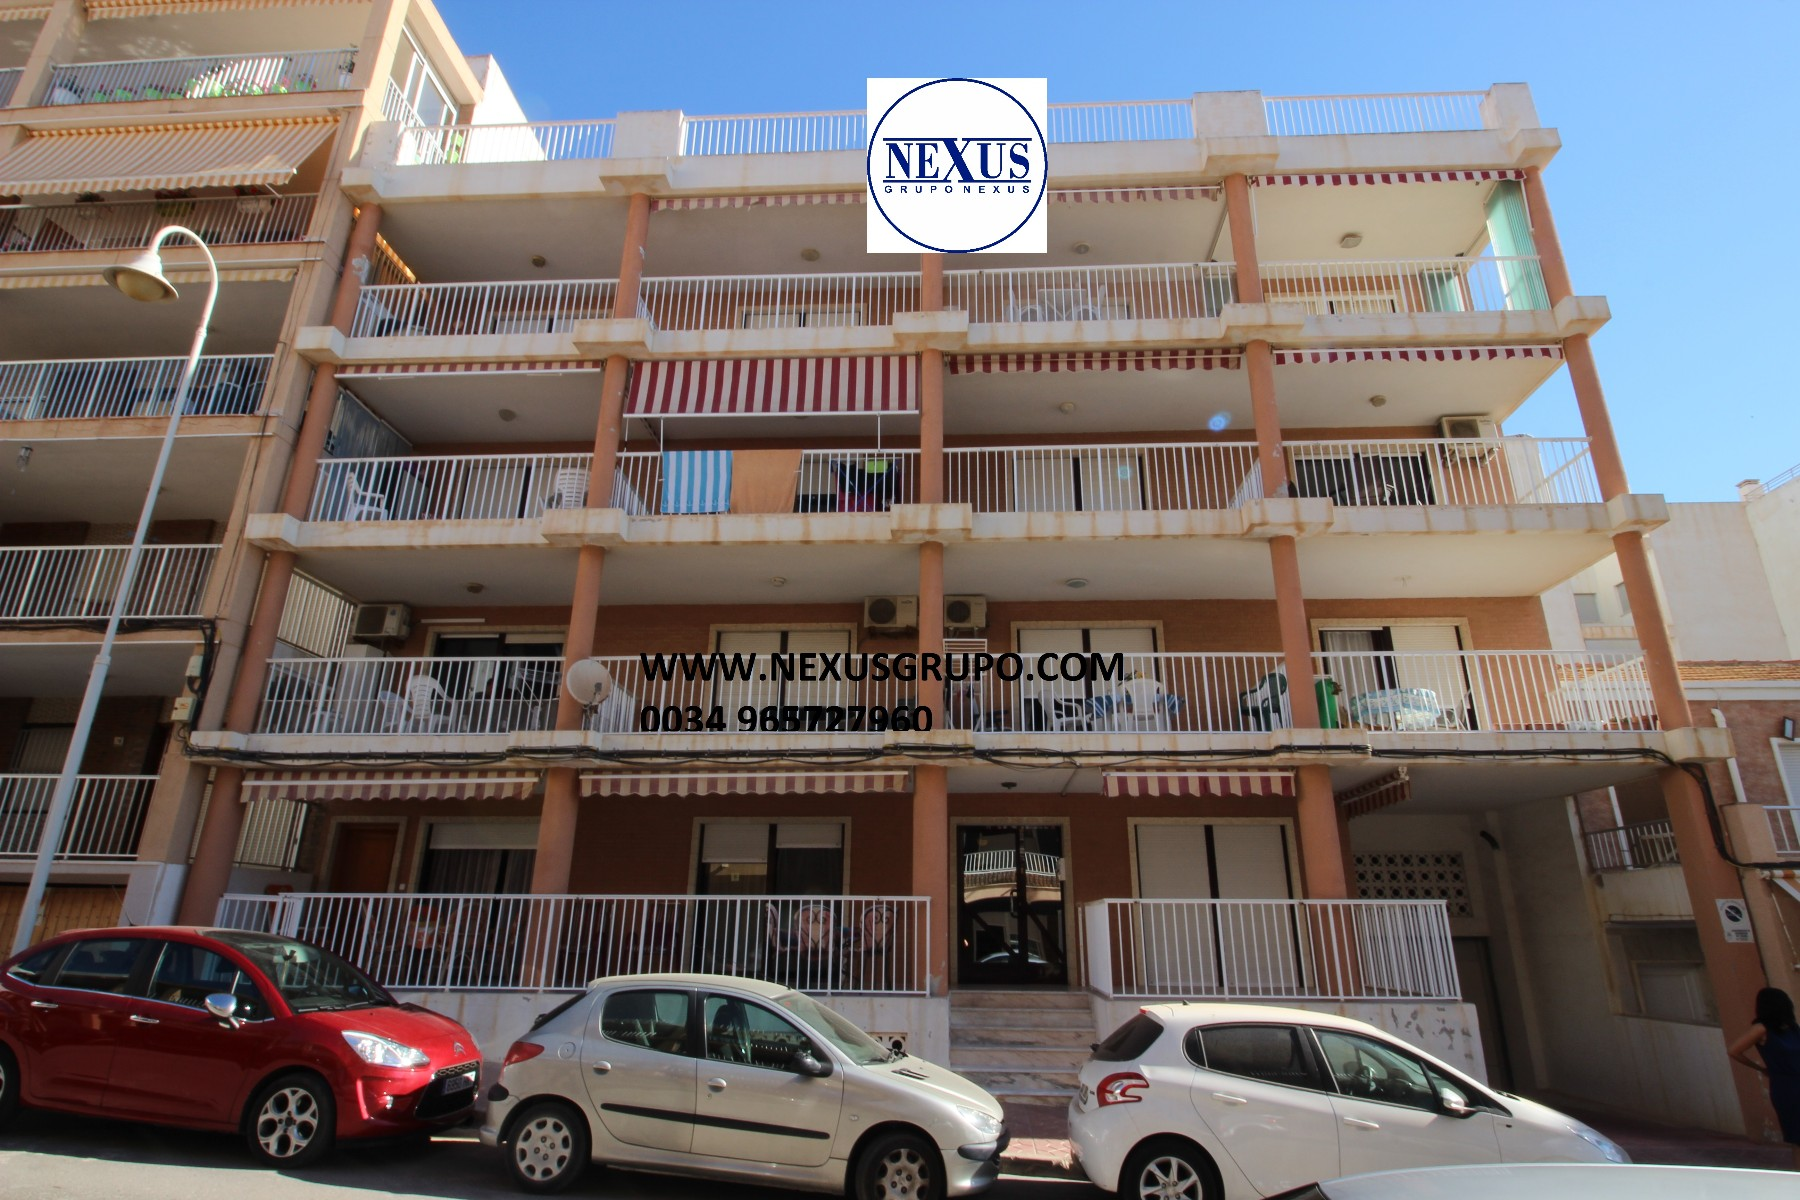 Apartamento en la playa!!! in Nexus Grupo